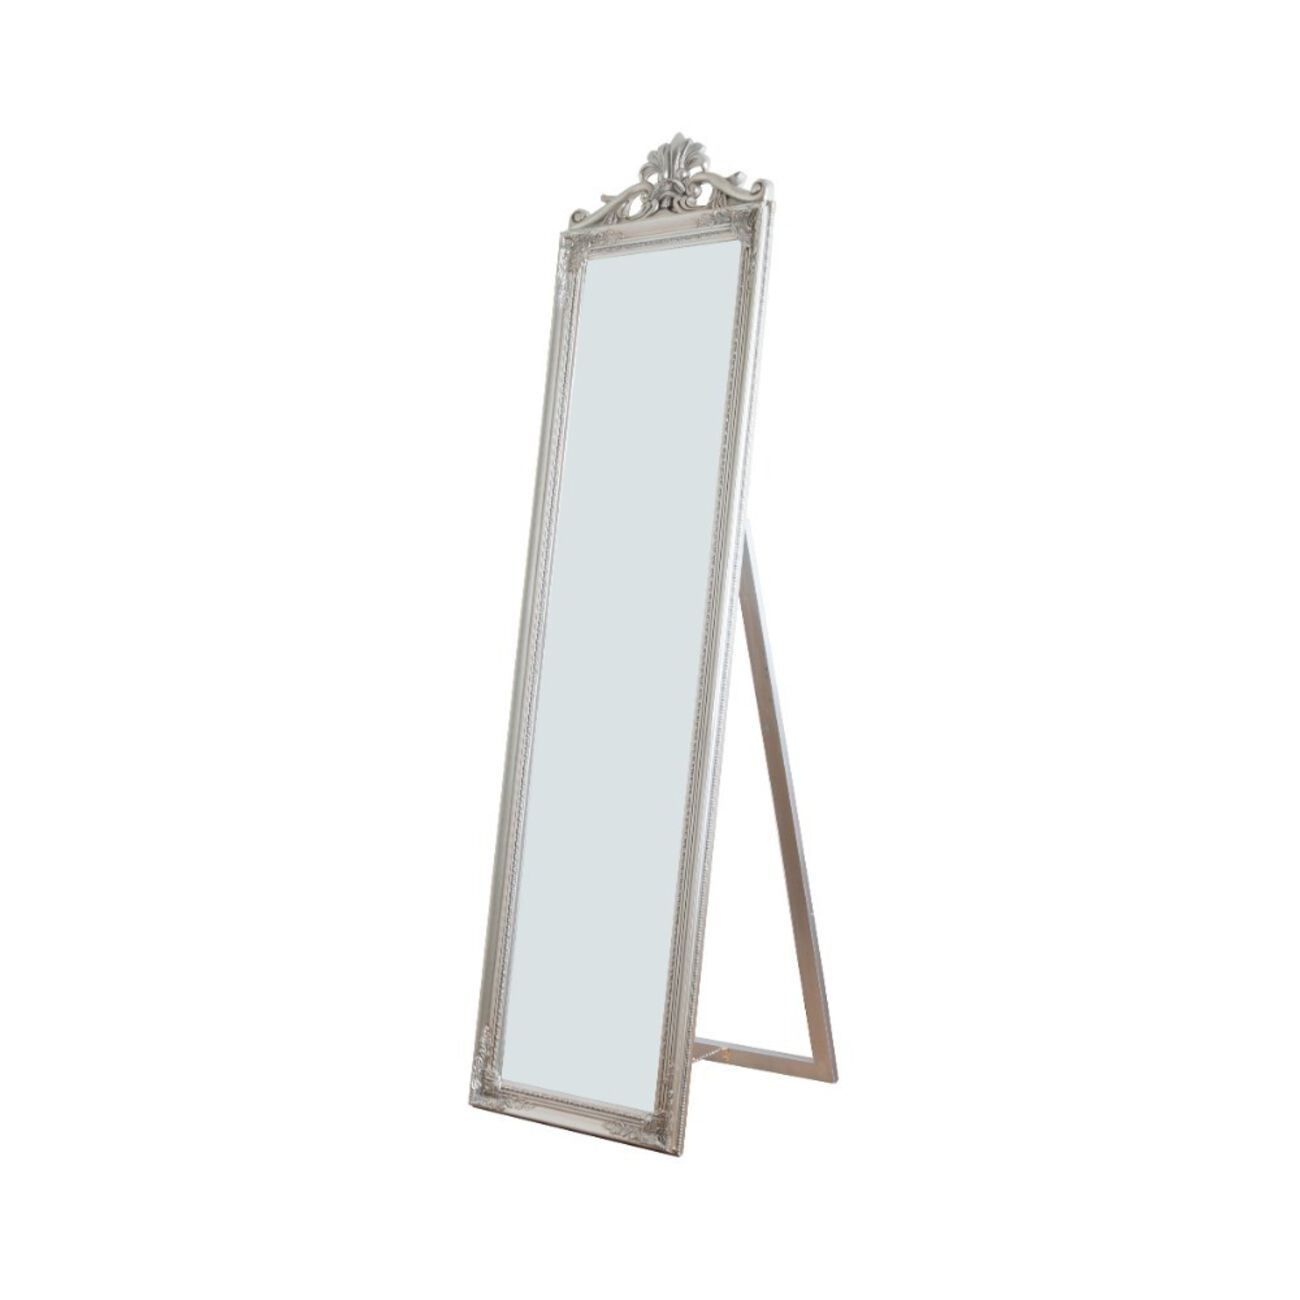 Standing Mirror, Silver